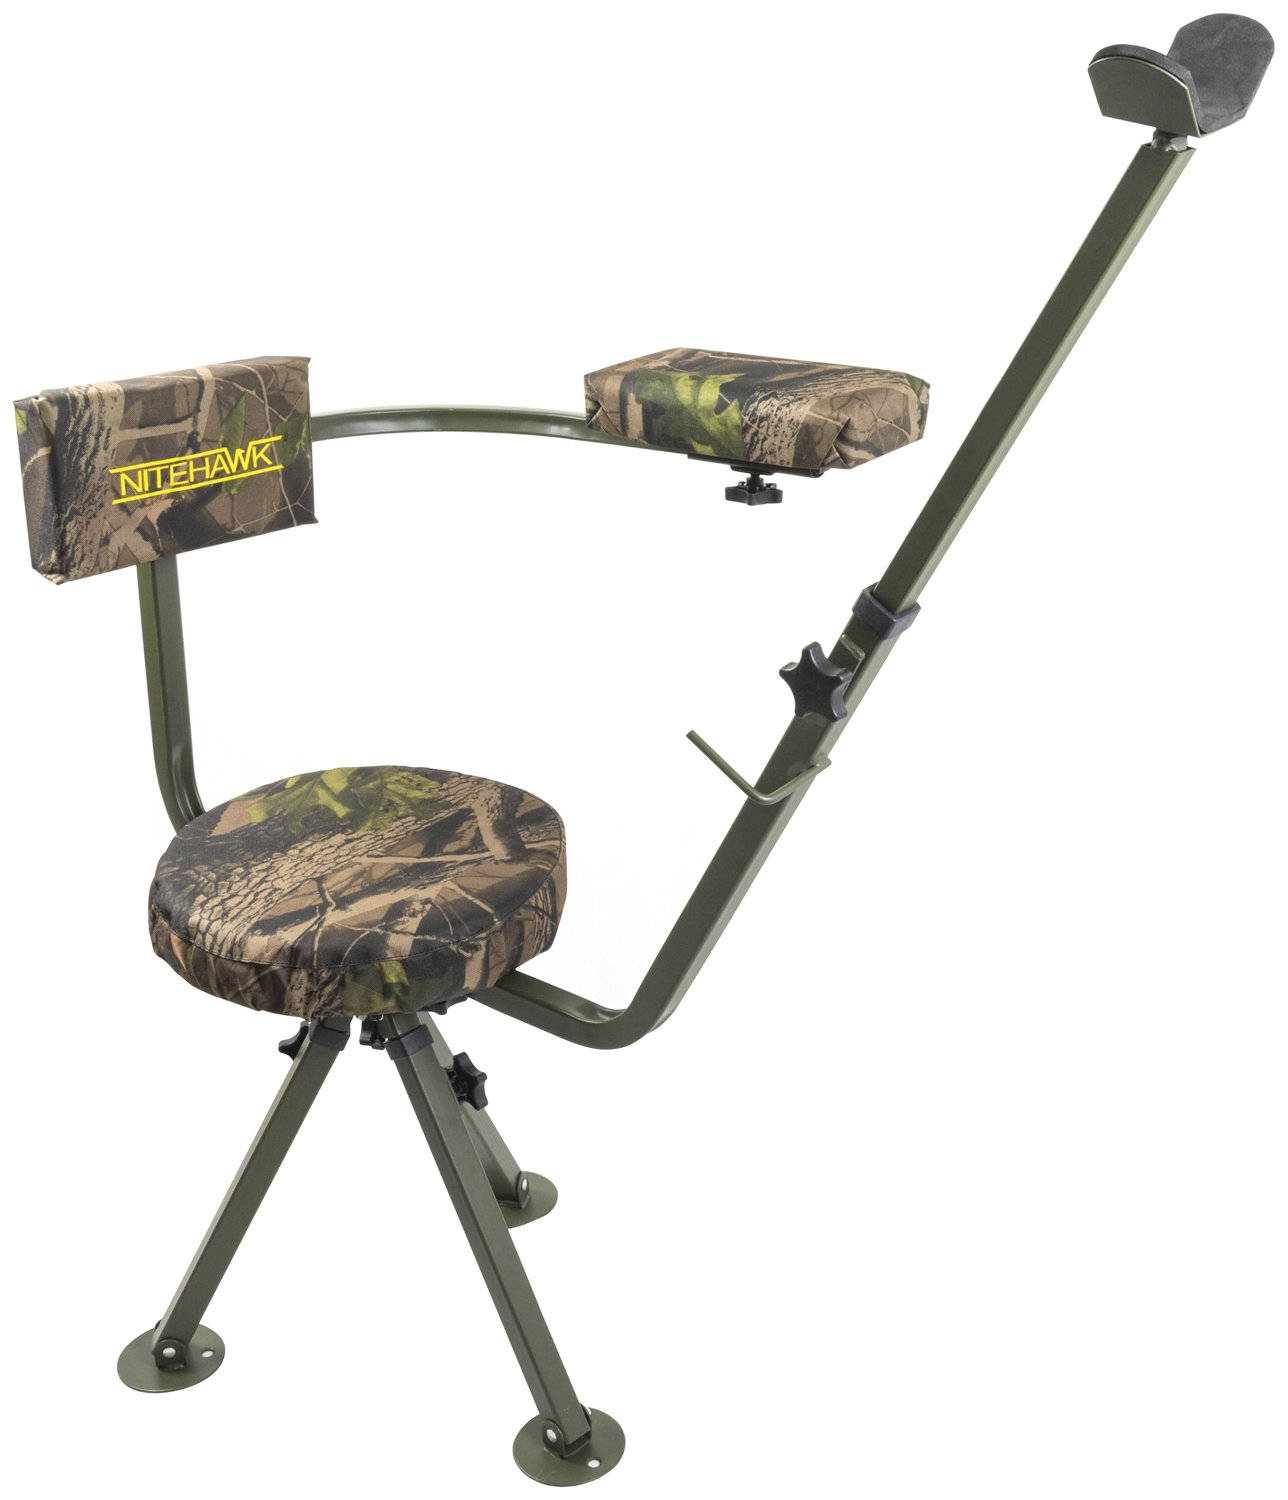 Fine Hunting Nitehawk Padded Shooting Table Gun Rifle Bench Rest Pdpeps Interior Chair Design Pdpepsorg